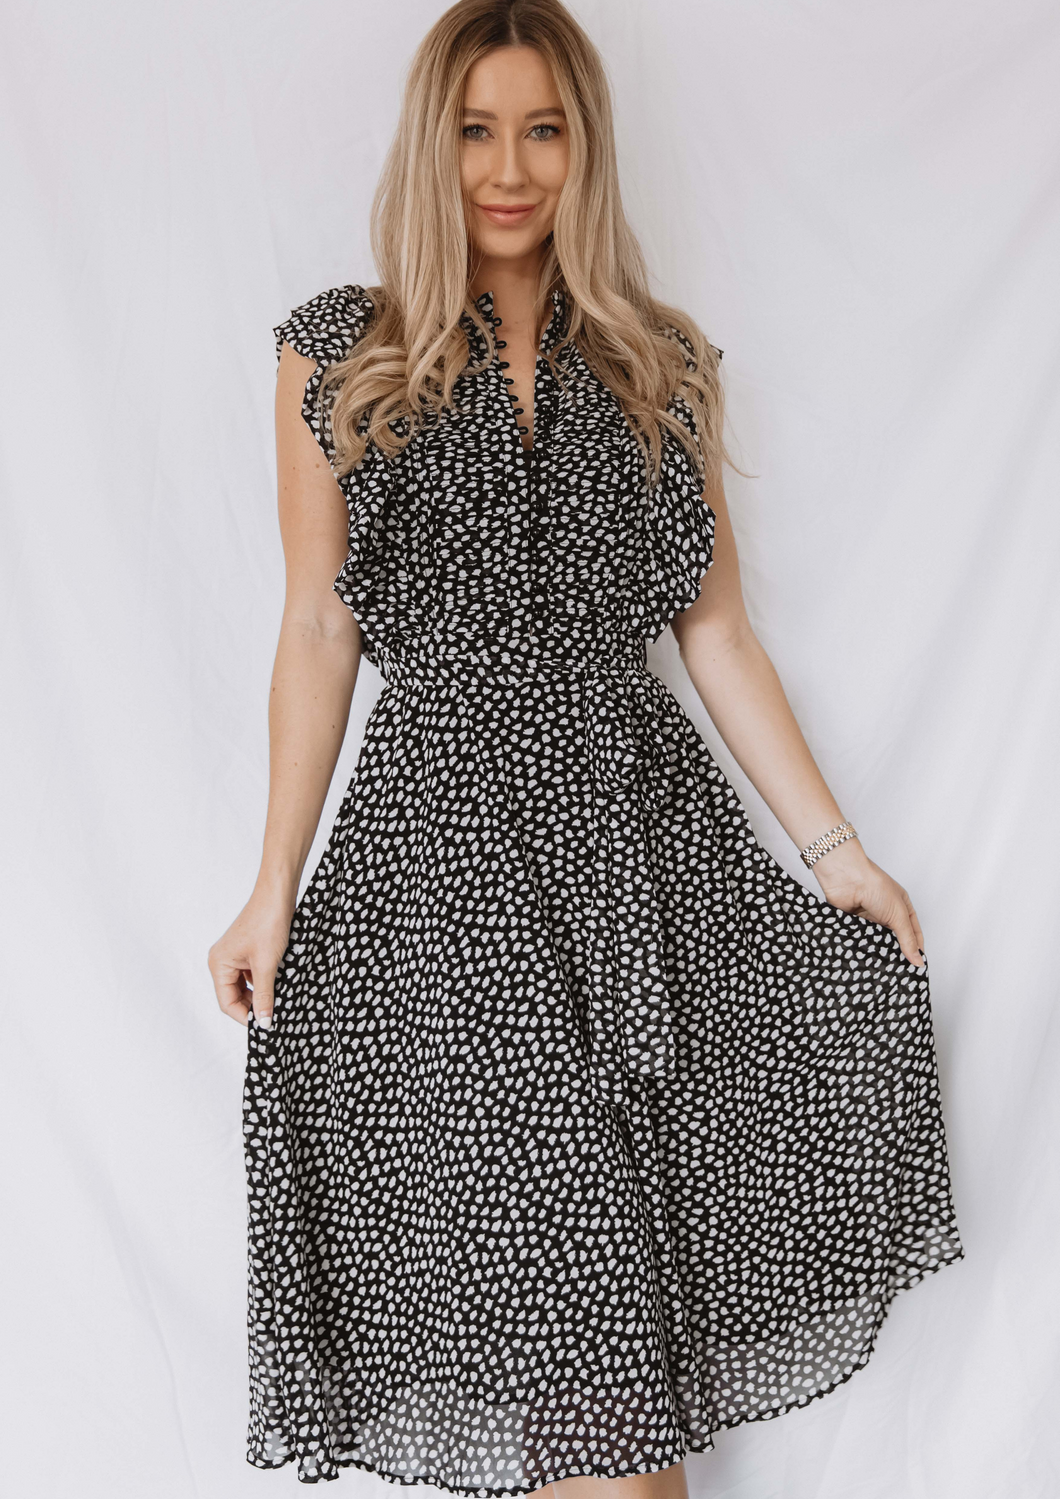 The Leopard Ruffle Dress